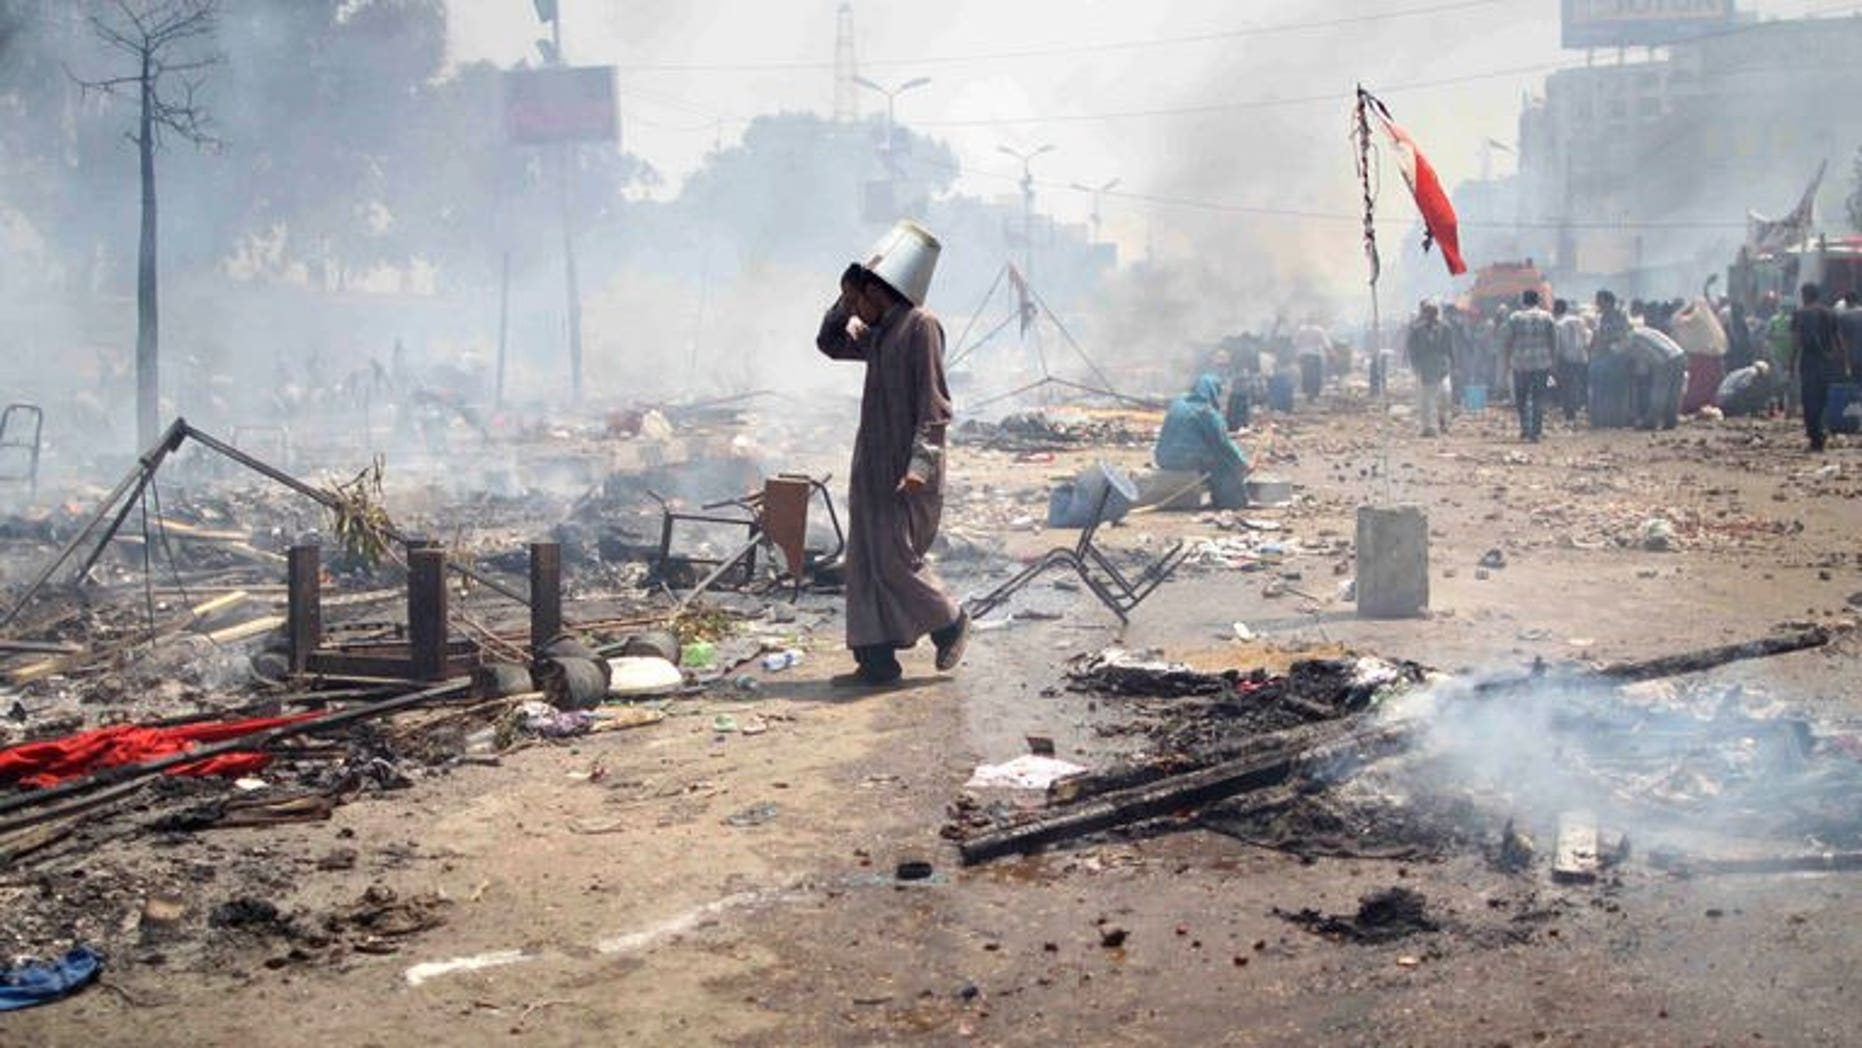 A supporter of Egypt's ousted president Mohamed Morsi walks through the debris following clashes with police in Cairo, on August 14, 2013. The teenage daughter of a senior Muslim Brotherhood leader was reportedly killed as police cracked down on a Cairo camp set up by Morsi's supporters.